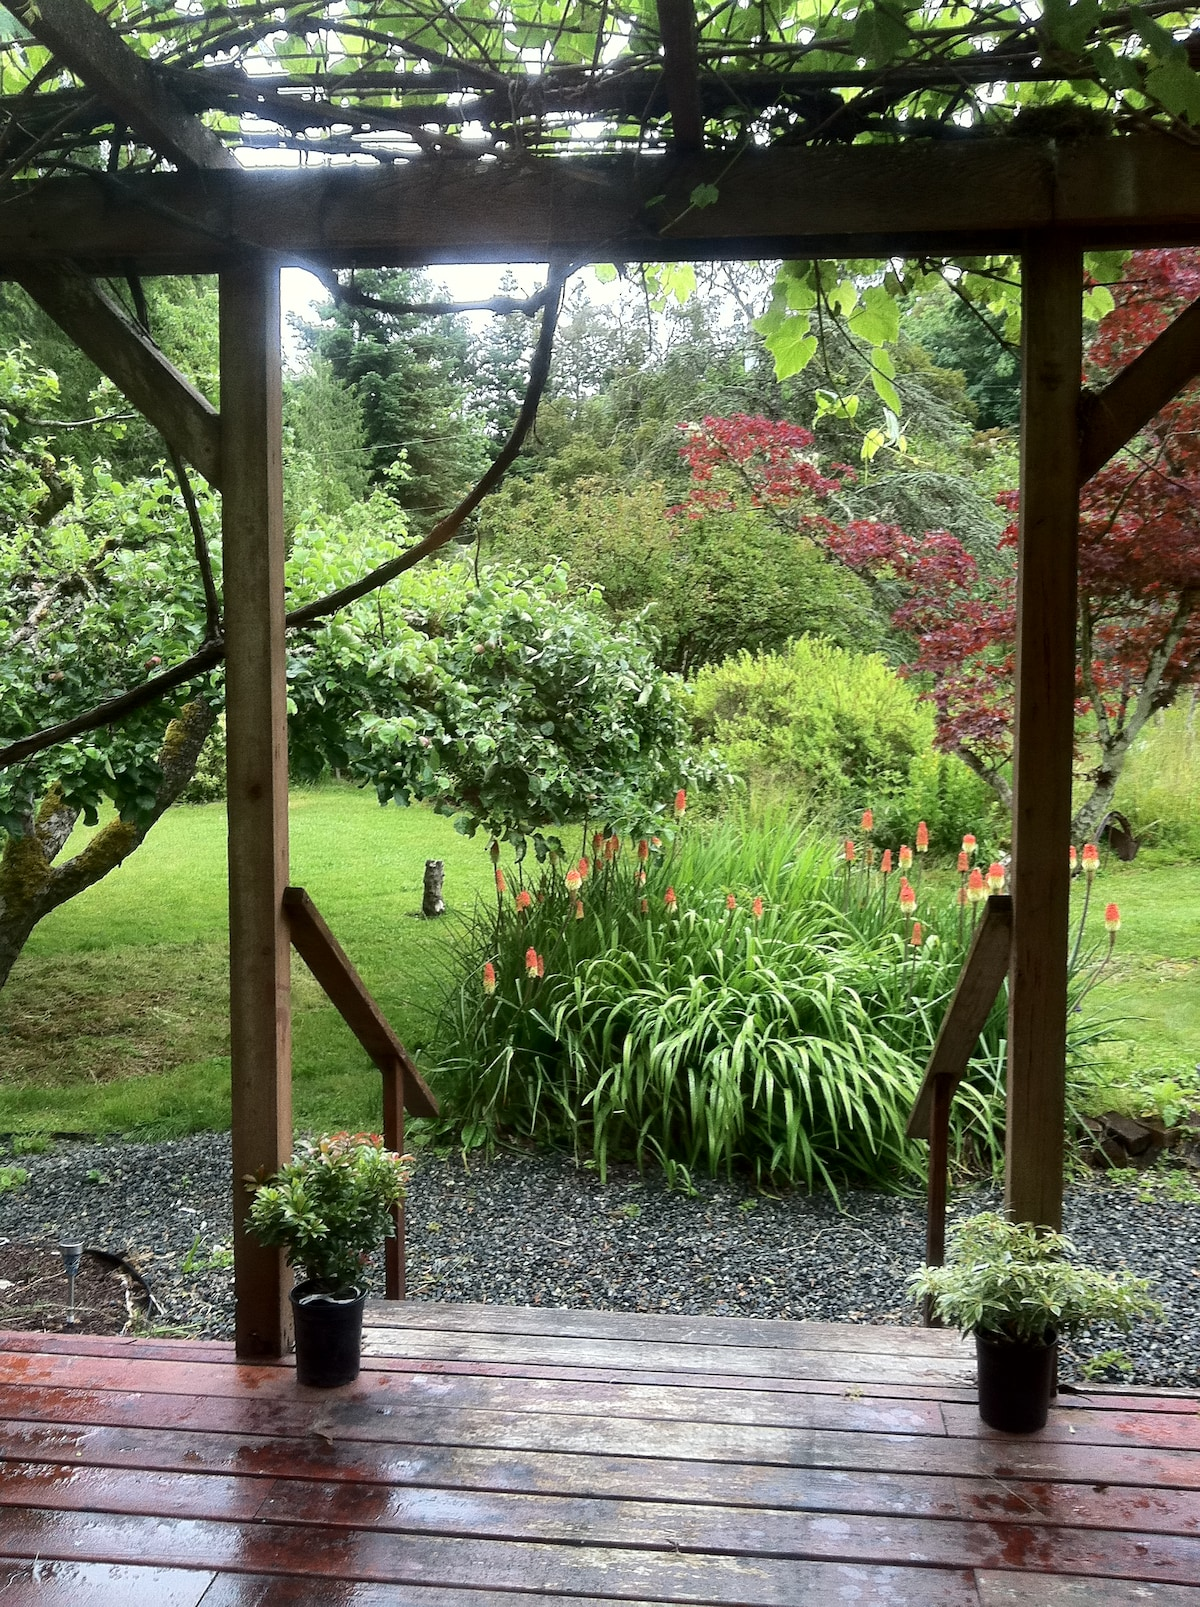 Looking onto the Garden from the front porch.